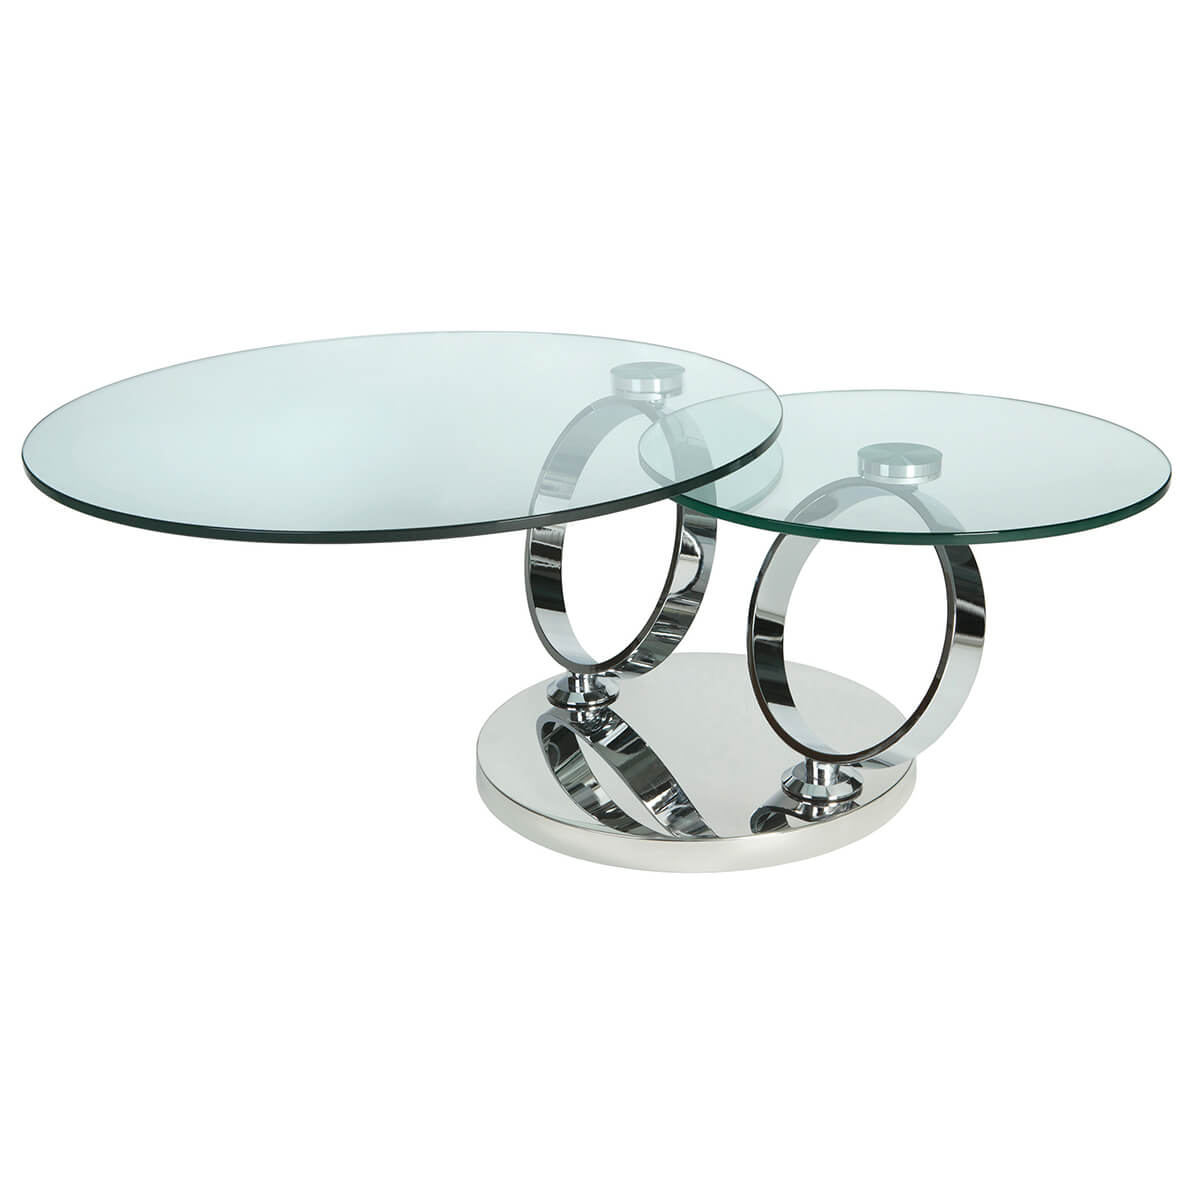 Magic rotating glass coffee table stainless steel coffee tables magic rotating glass coffee table geotapseo Image collections